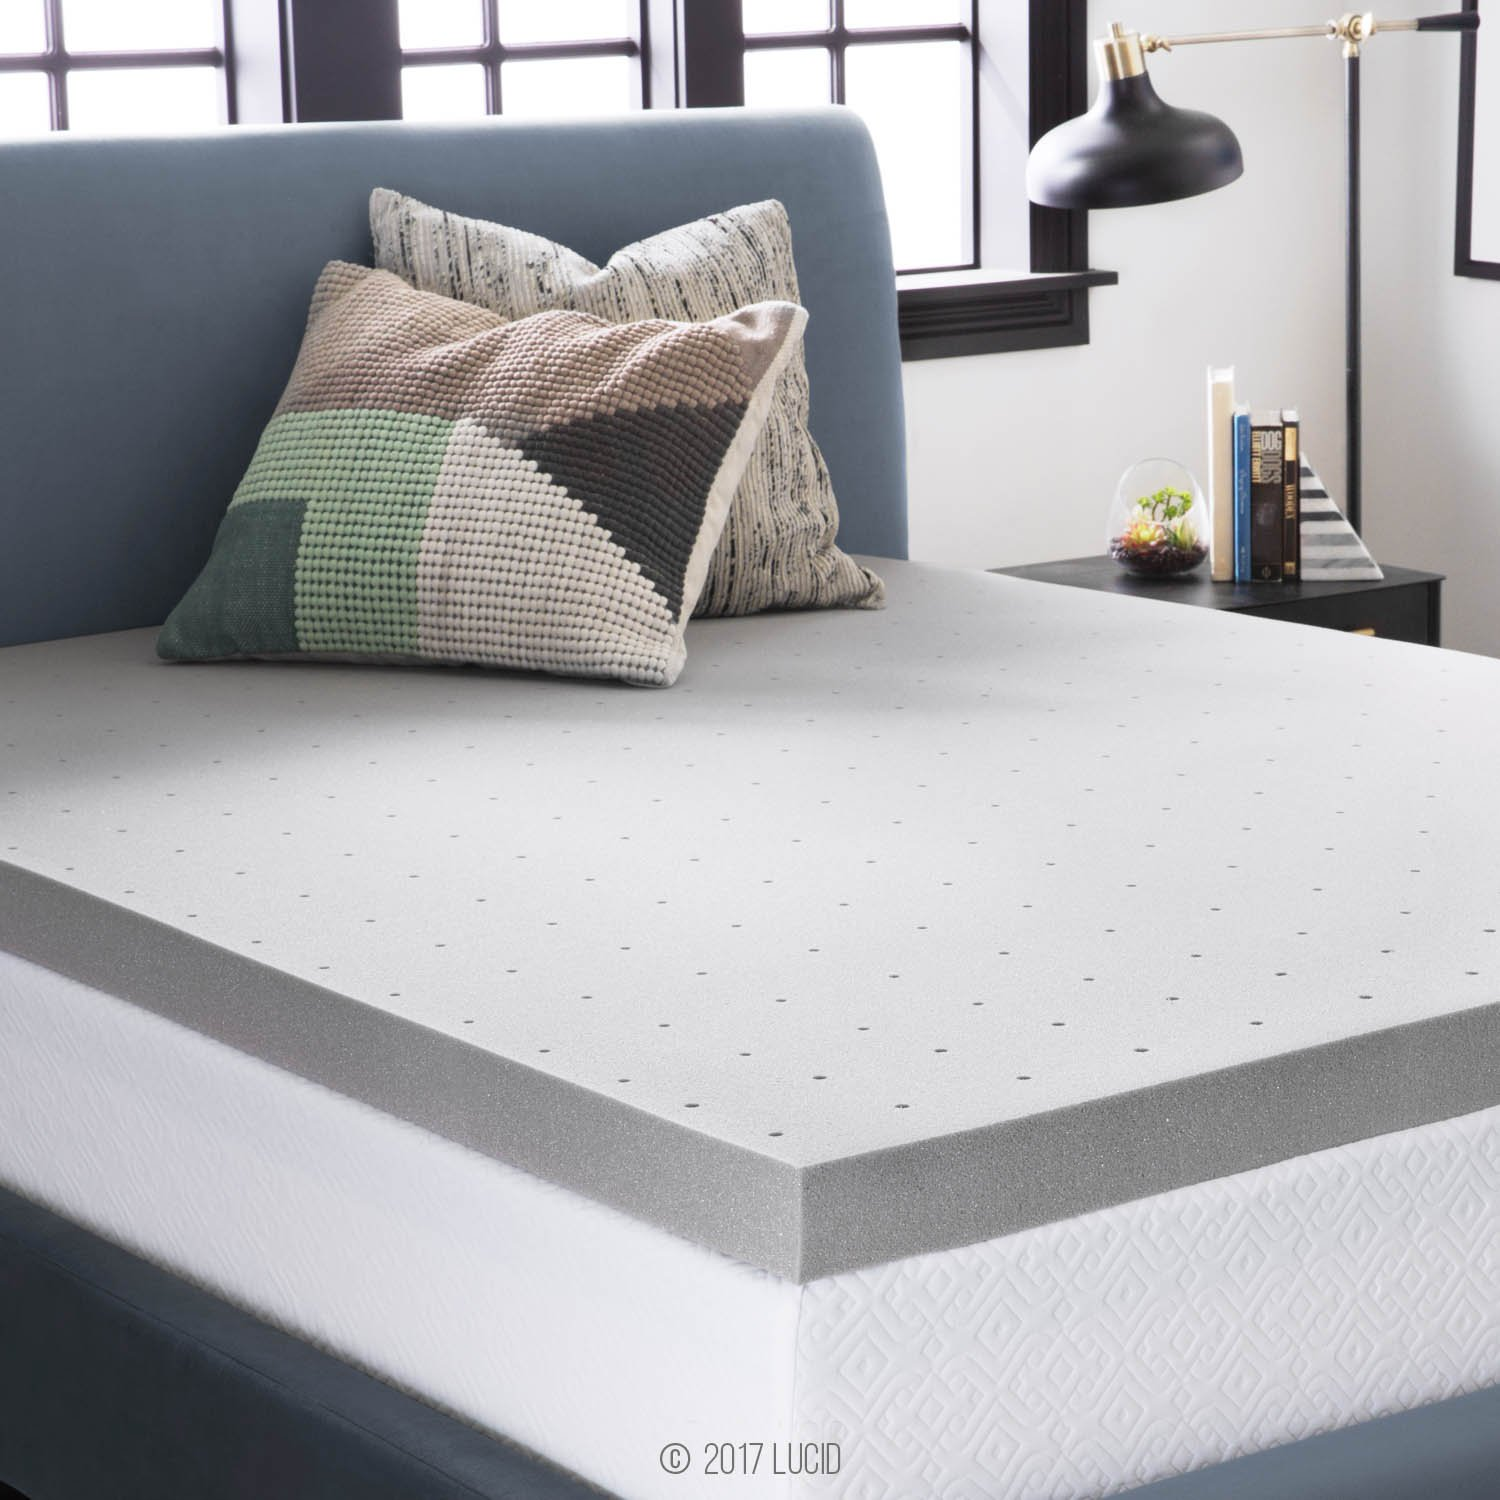 LUCID 3 Inch Bamboo Charcoal Memory Foam Mattress Topper - Twin by LUCID